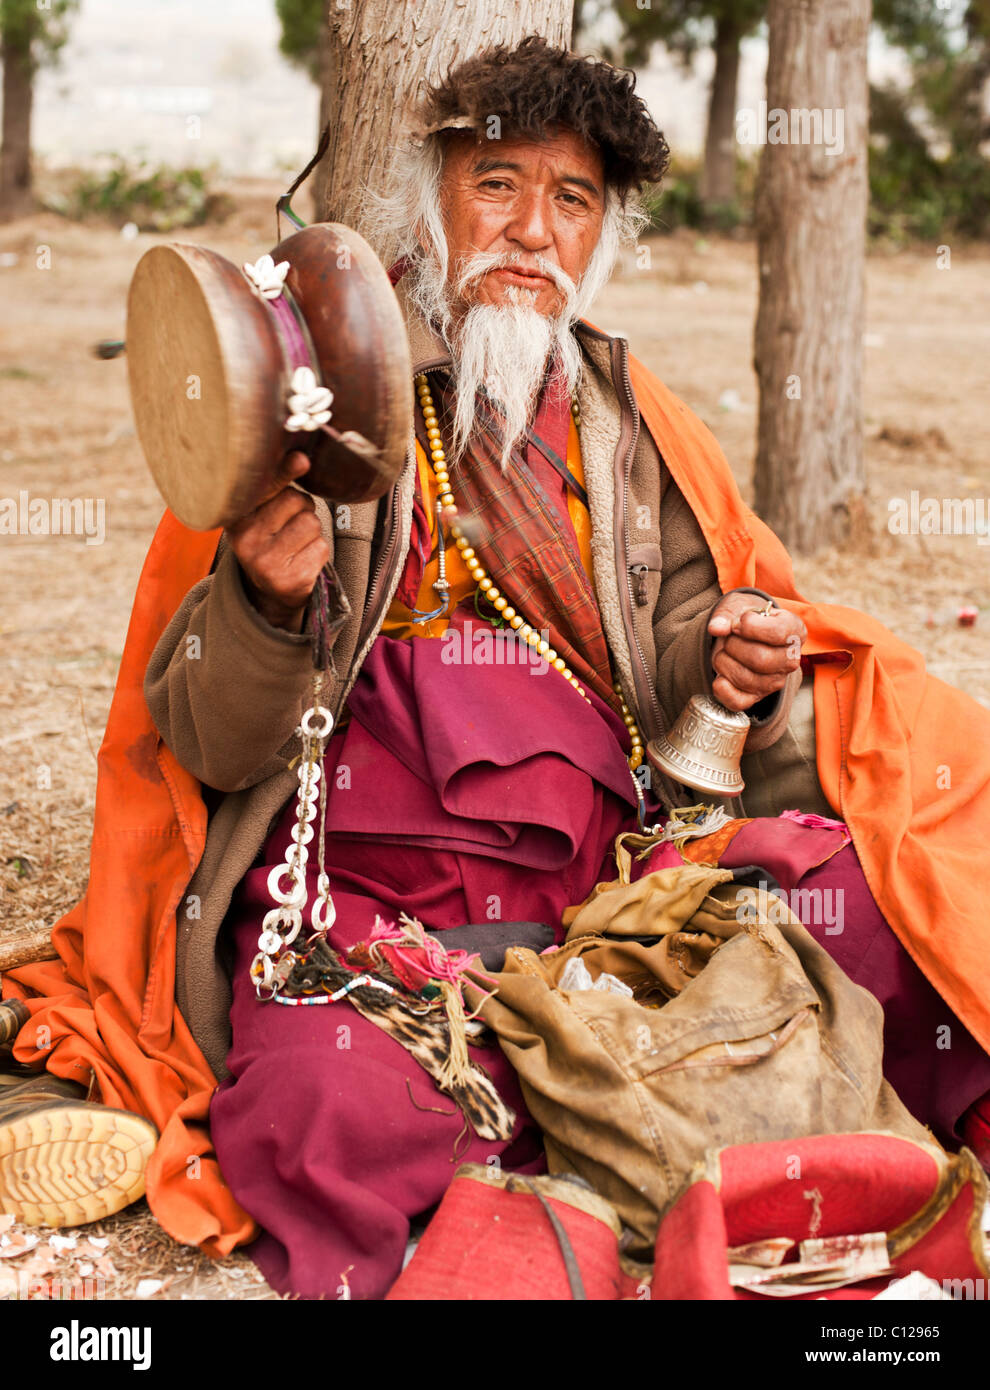 Bhutanese healer or medicine man selling his treatments at a religious festival in Punakha, Bhutan - Stock Image